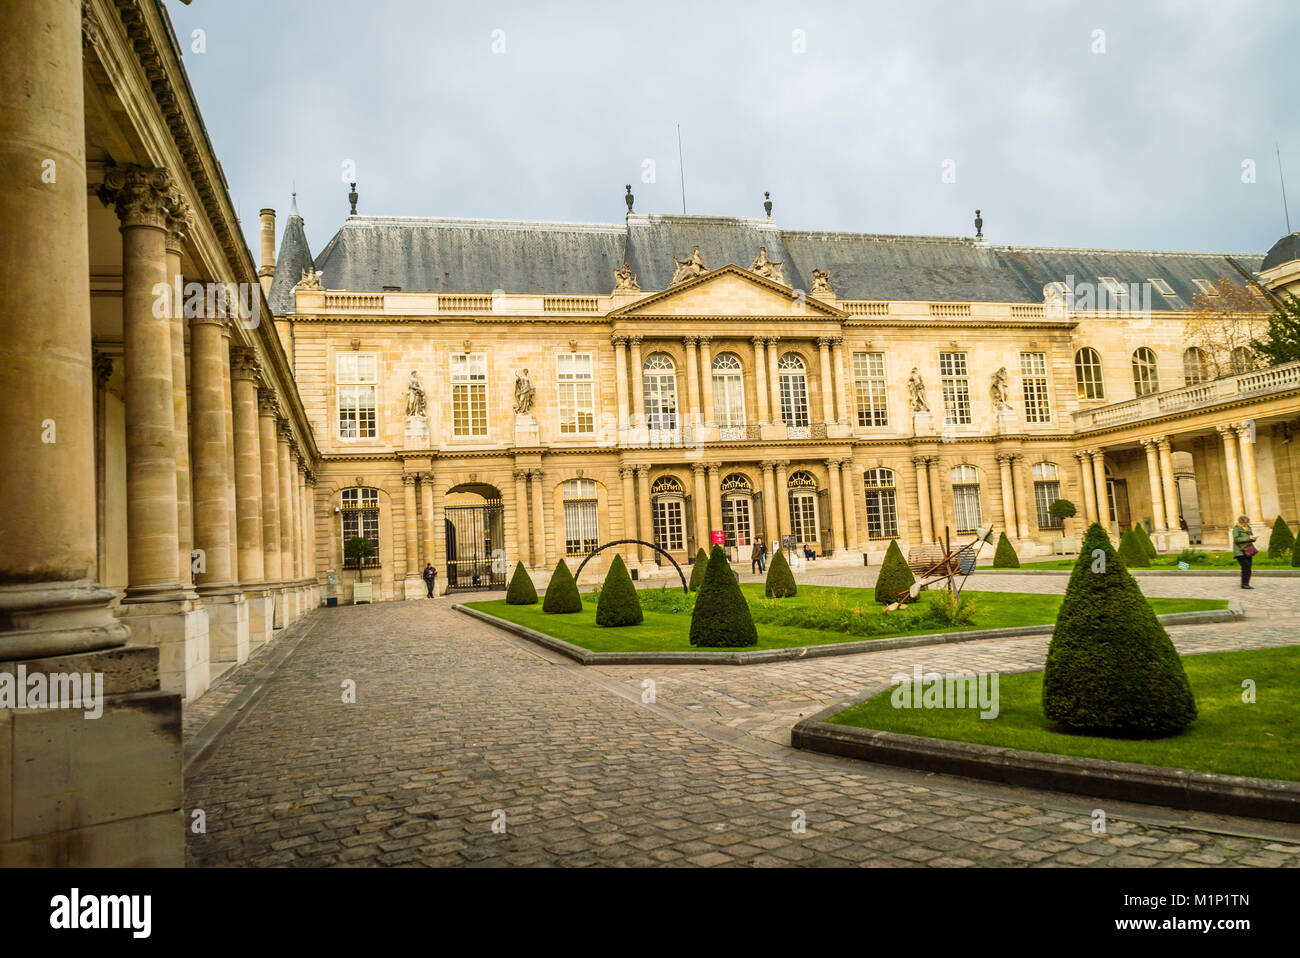 Outside view of Carnavalet museum in Paris - Stock Image